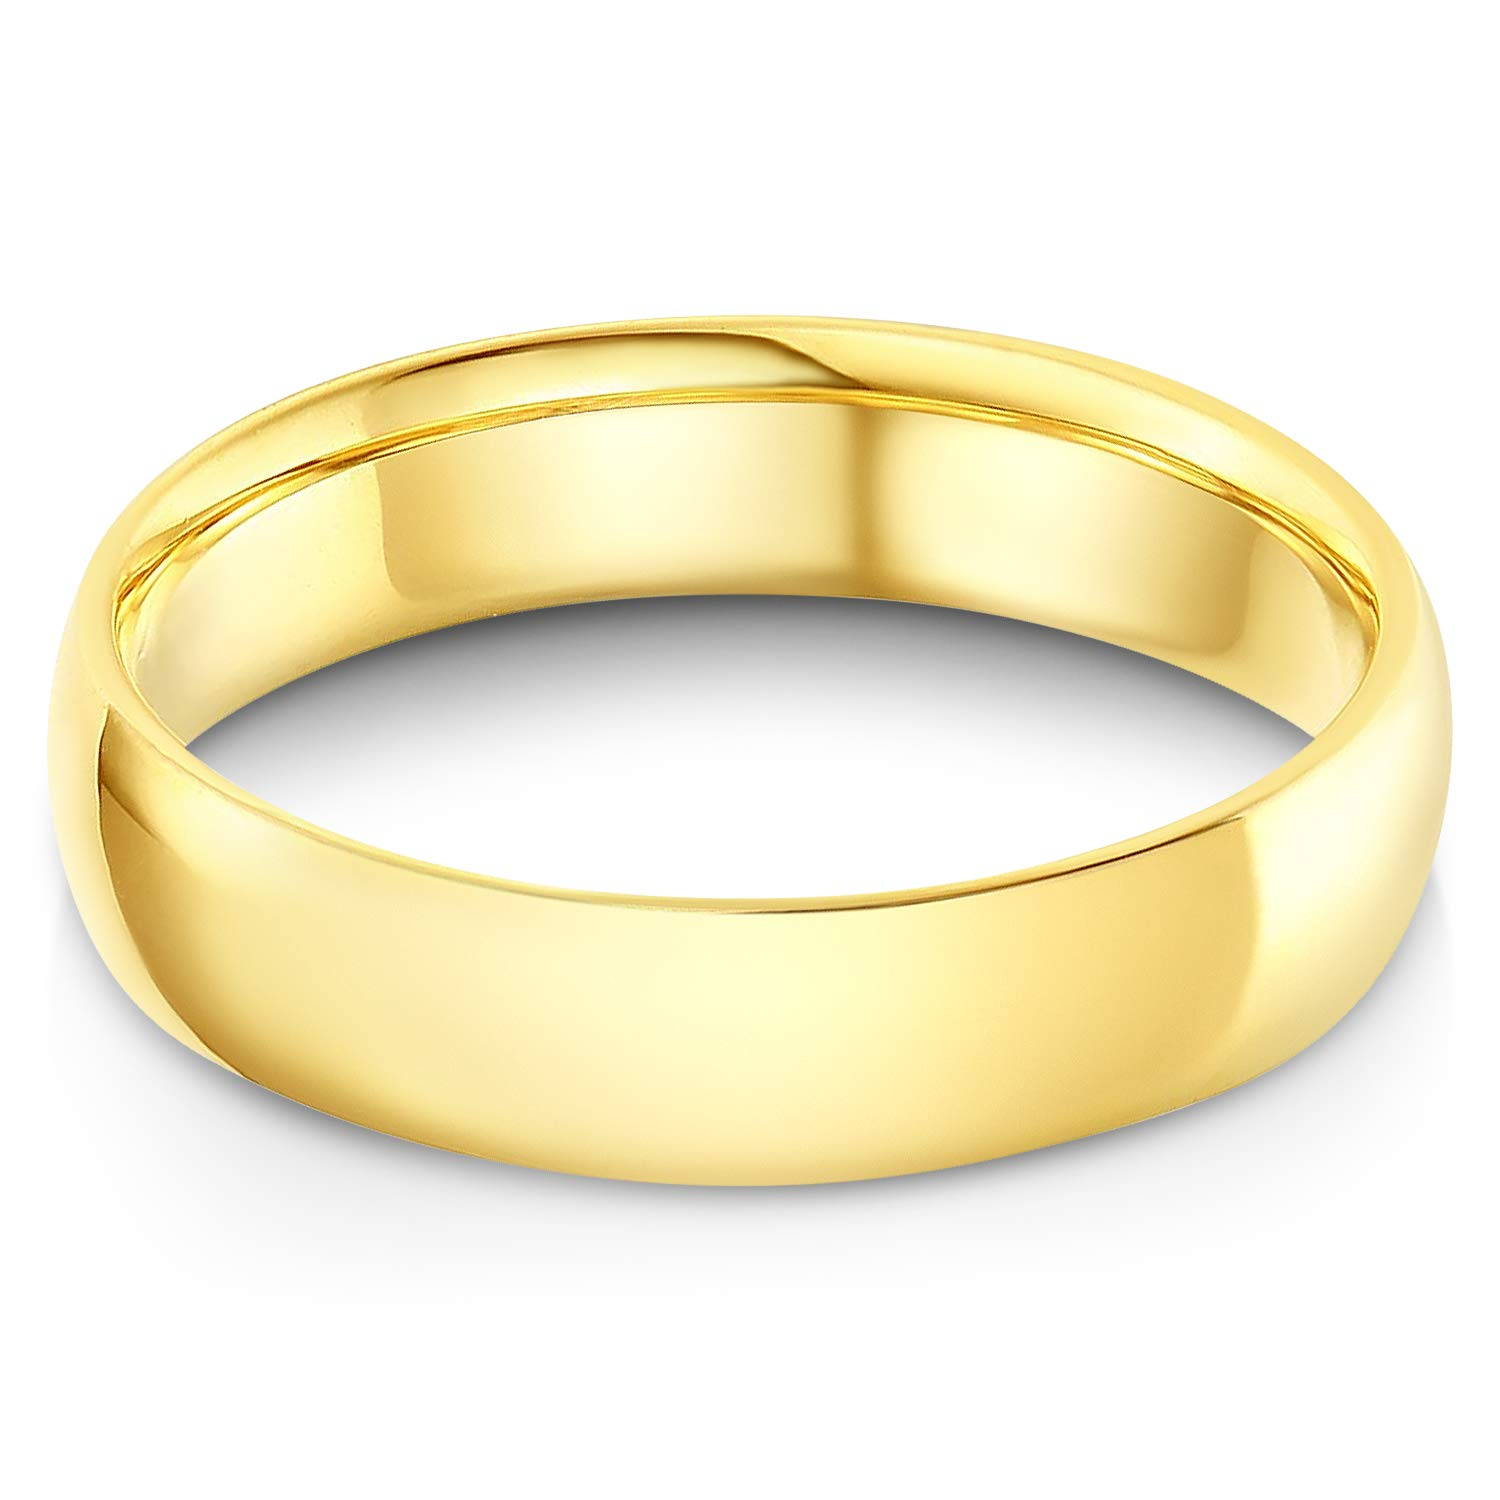 Ioka - 14k Solid Yellow Gold 5mm Plain Standard Classic Fit Traditional Wedding Band Ring - size 11.5